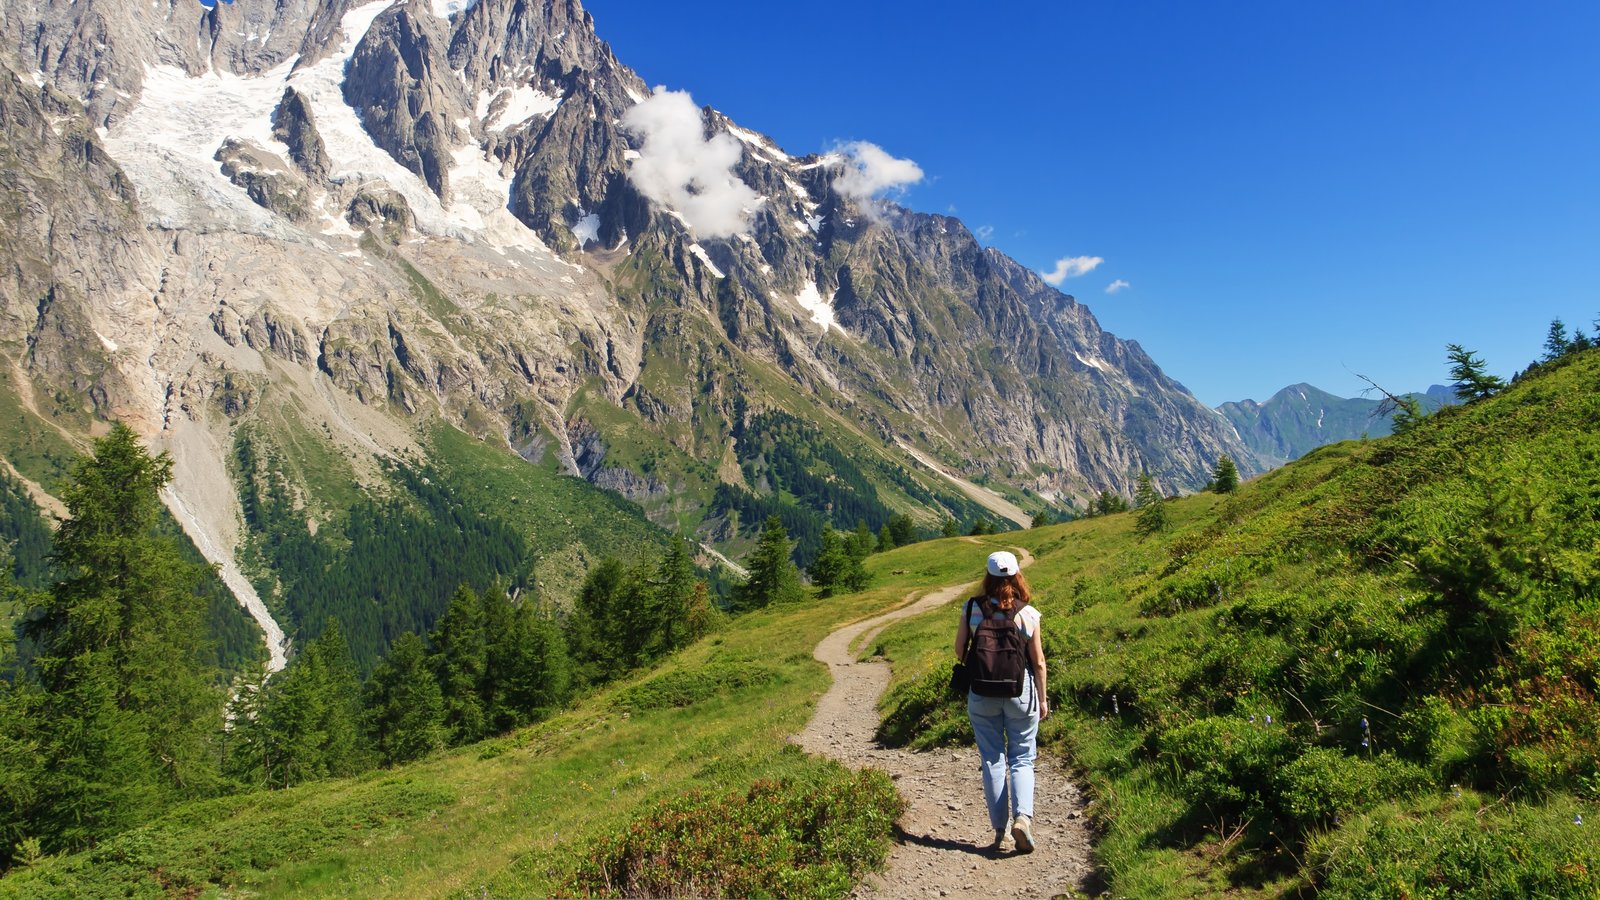 Aosta featuring mountains and hiking or walking as well as an individual child